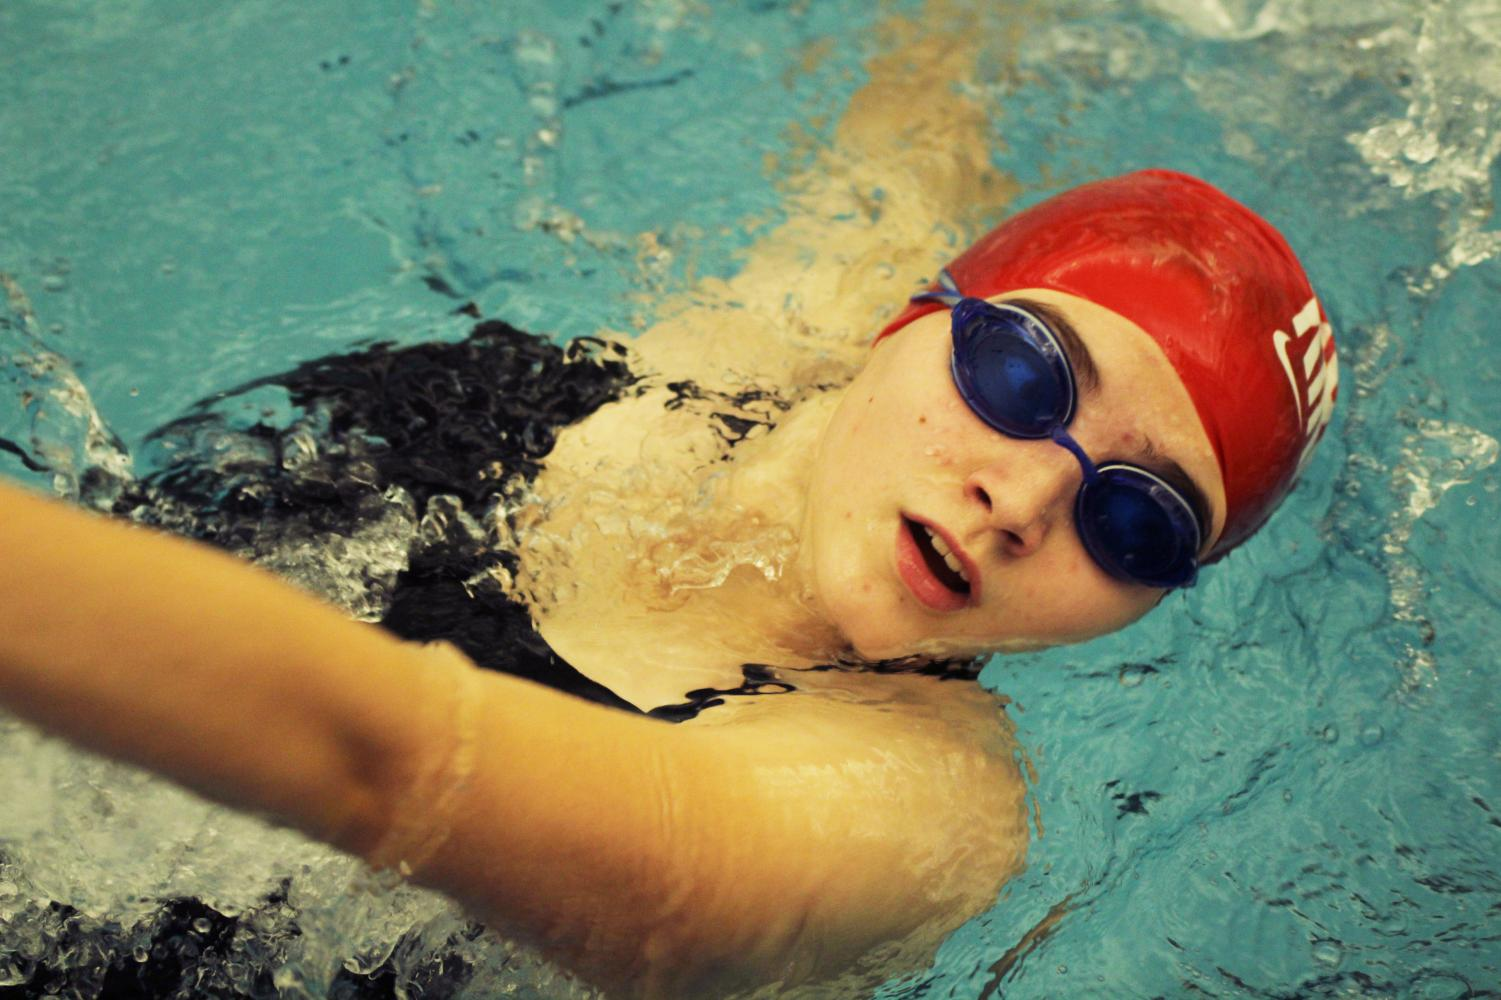 Swimming+backstroke%2C+Samantha+Roth%2C+sophomore%2C+competes+at+the+swim+meet+against+Marquette+Dec.+11.+